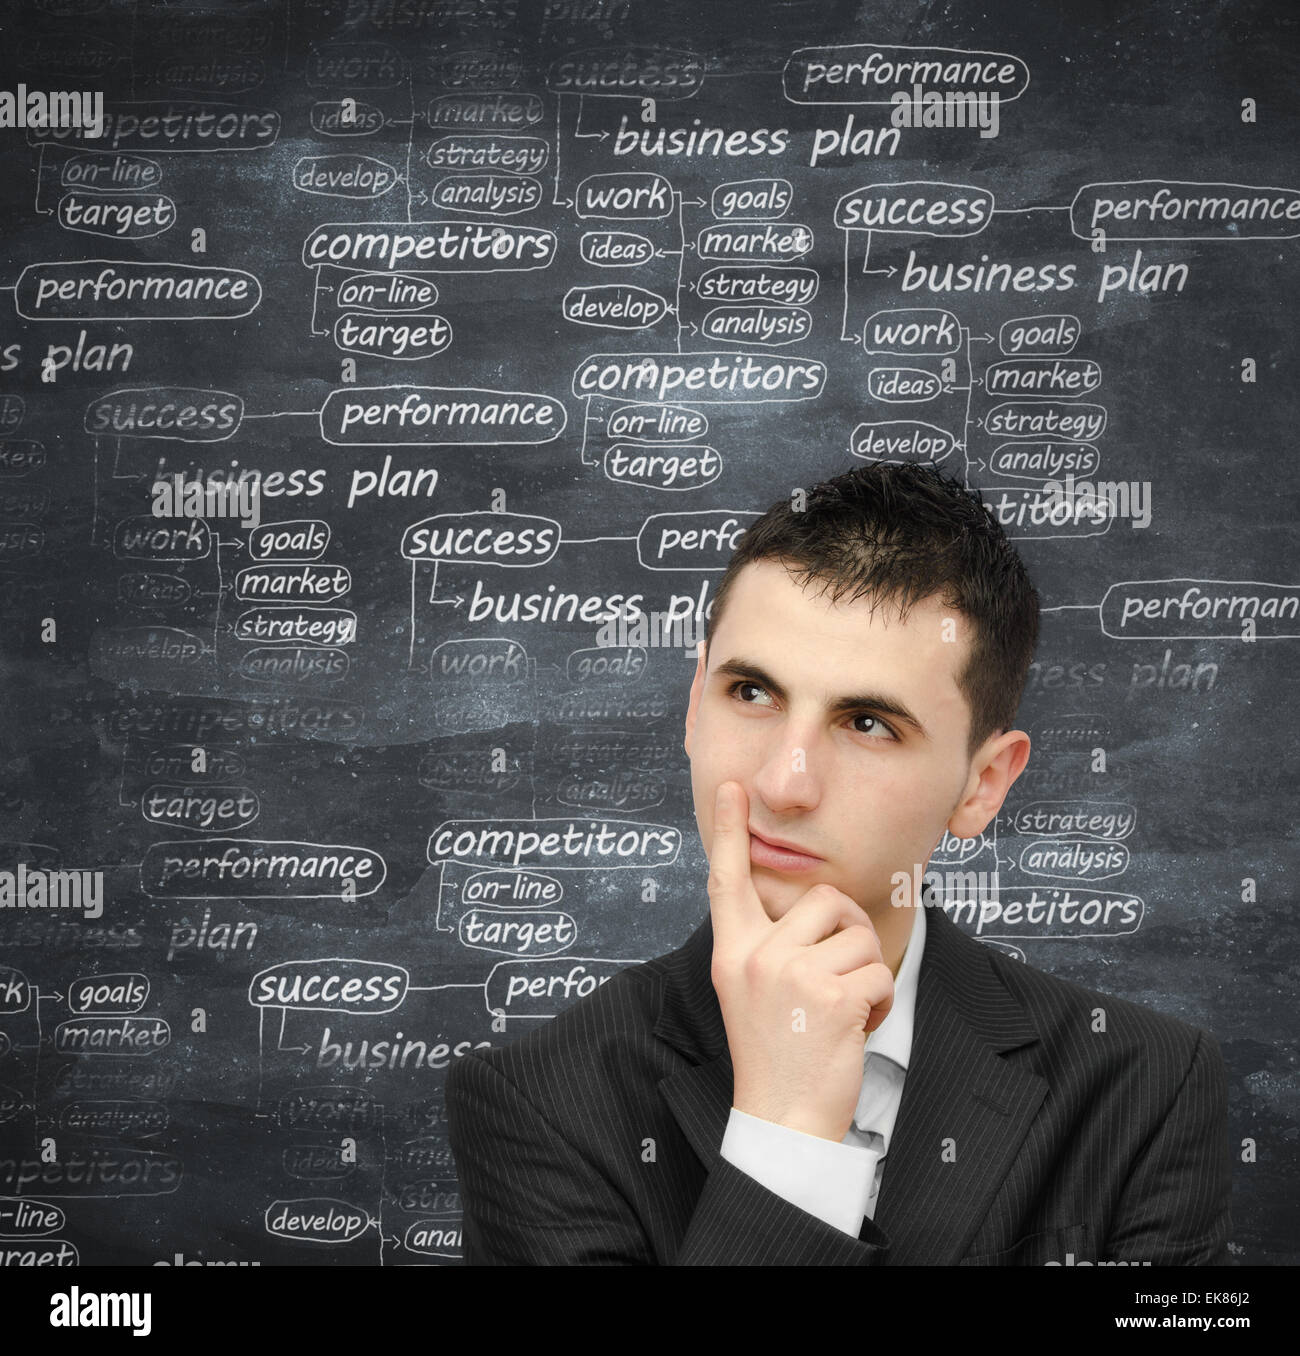 Developing a business plan - Stock Image